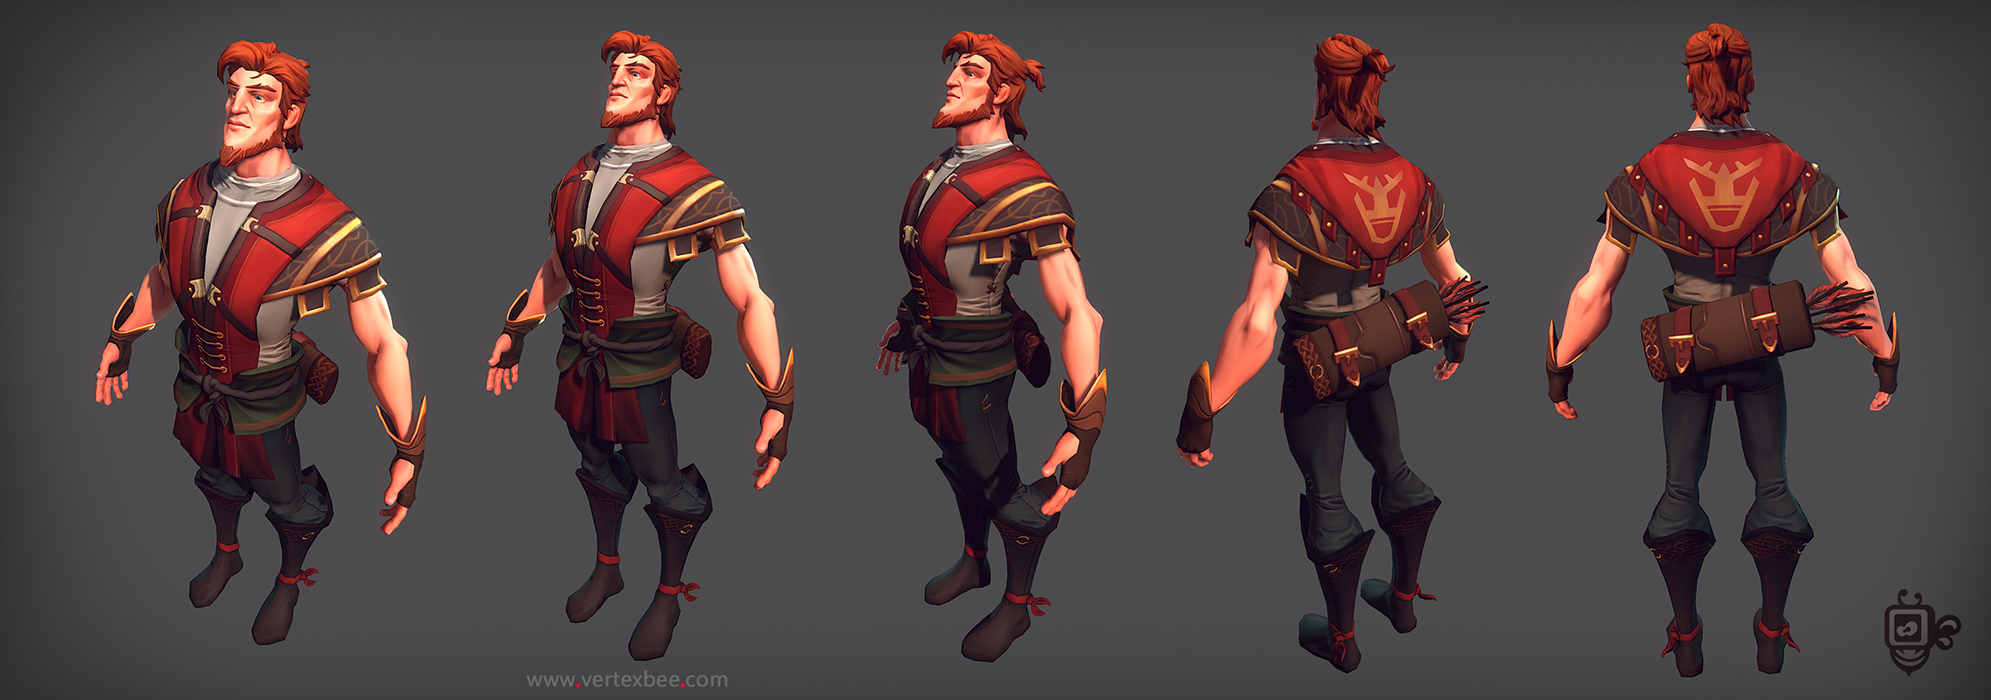 Character Design Zbrush Course : Archer in game model by vertexbee on deviantart